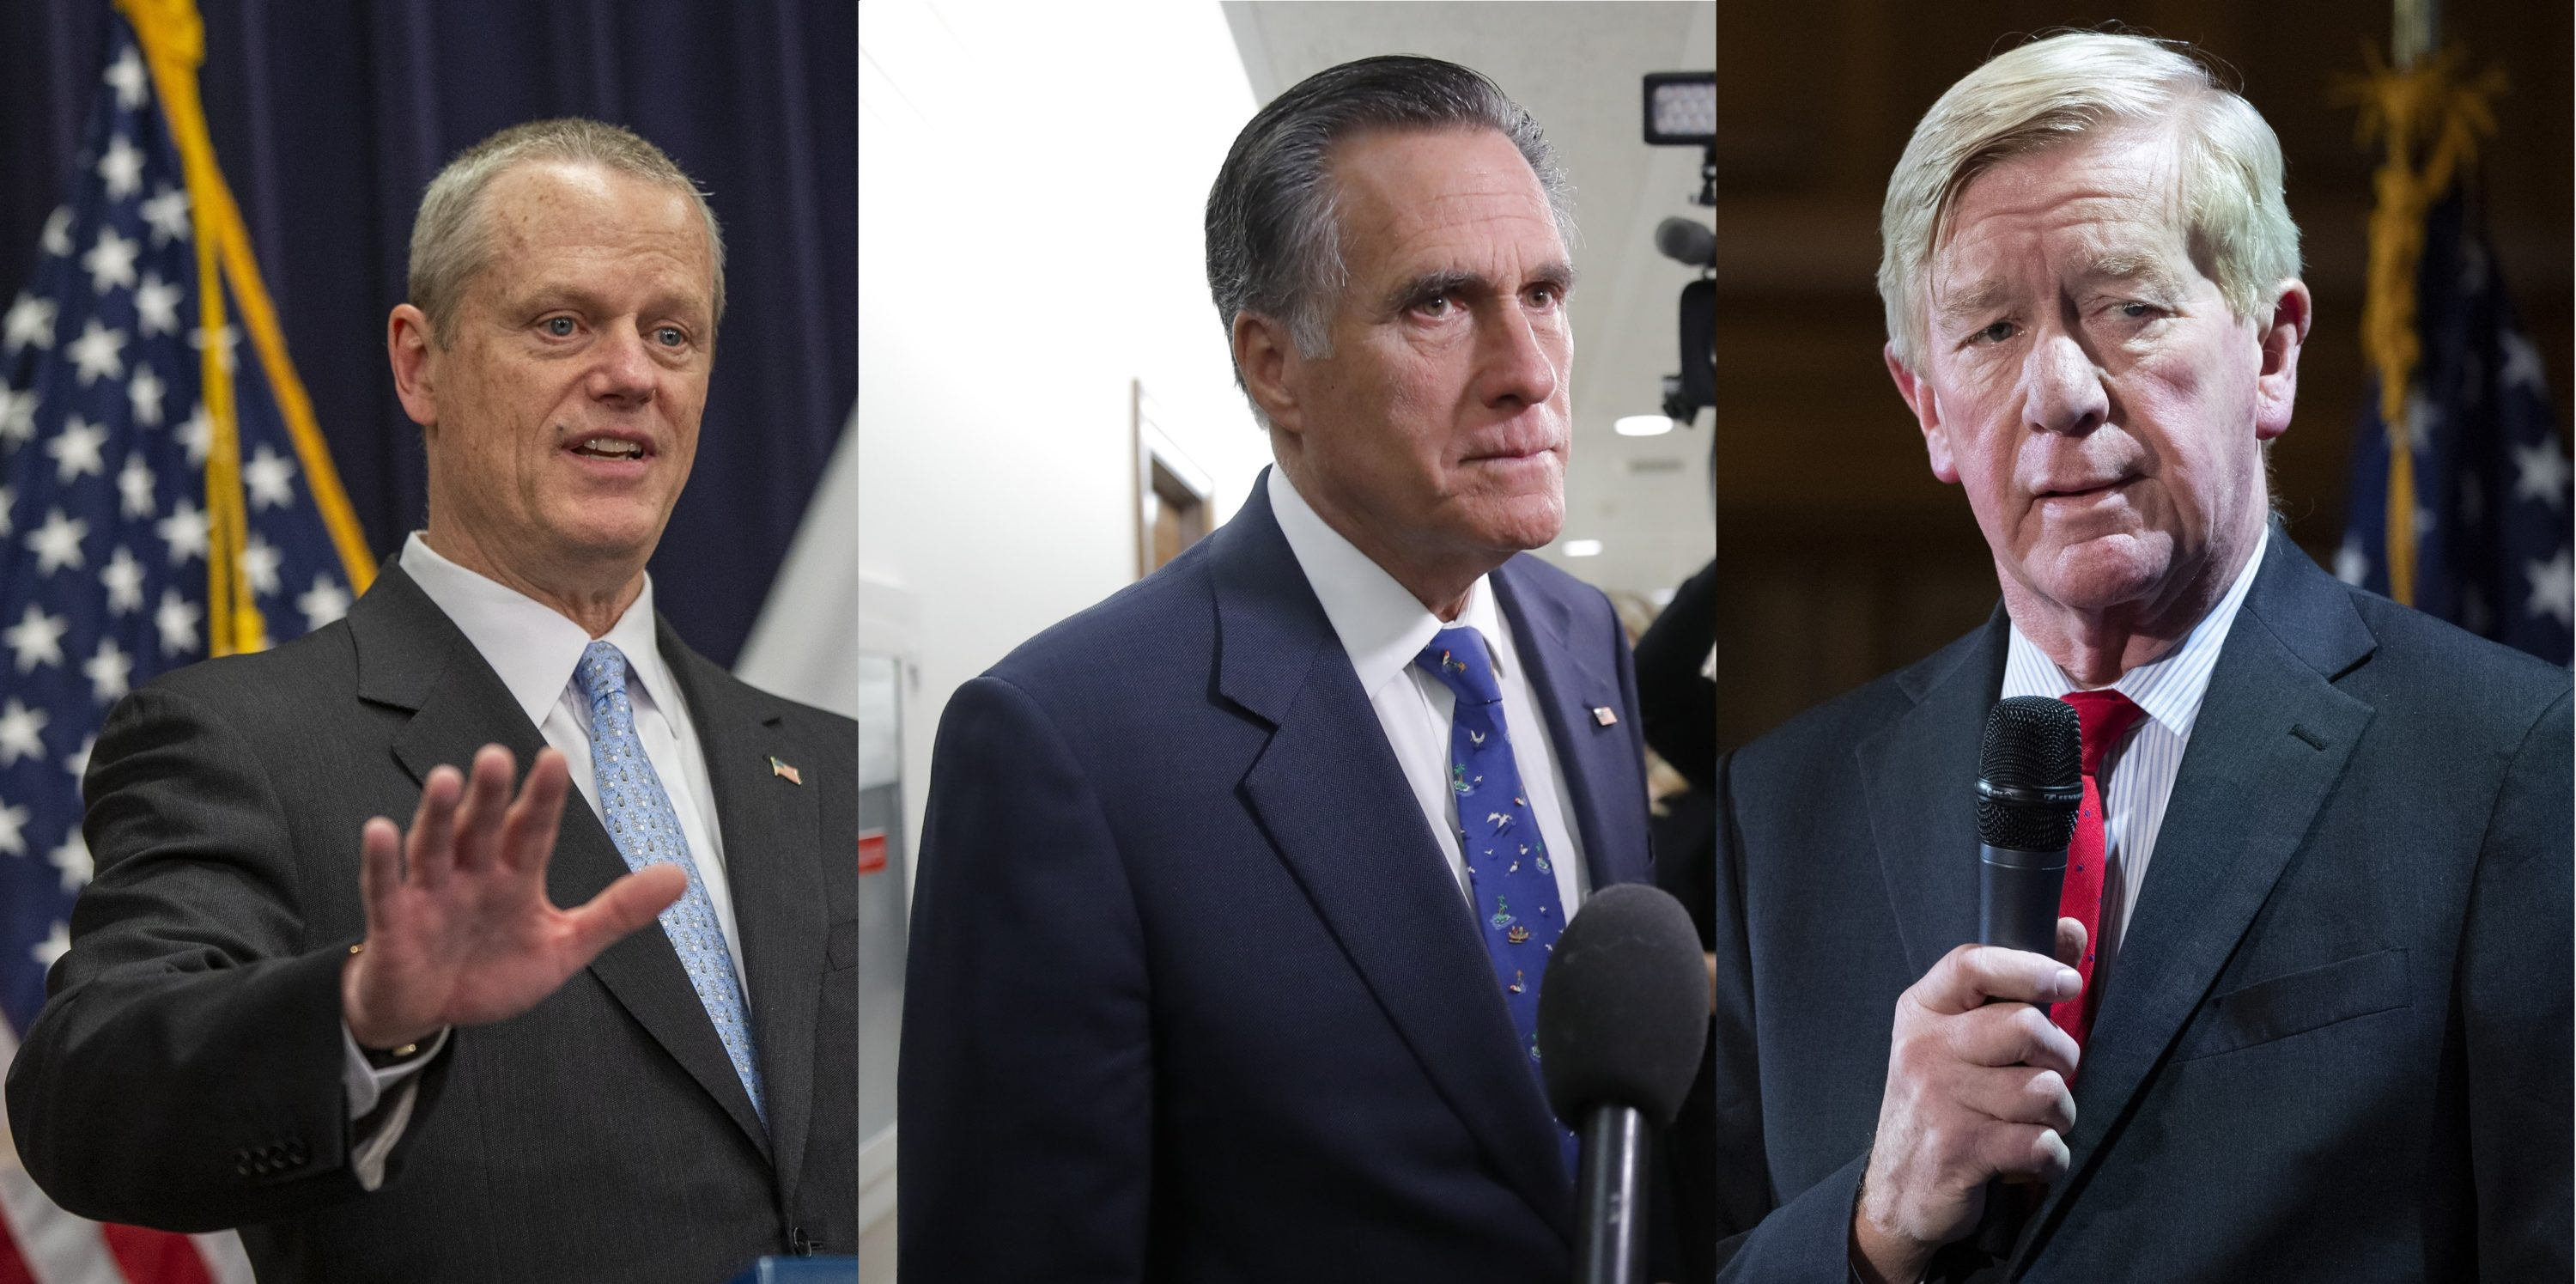 Massachusetts Gov. Charlie Baker and predecessors Mitt Romney and Bill Weld (Baker photo by Jesse Costa/WBUR; Romney photo by Carolyn Kaster/AP; Weld photo by Mary Altaffer/AP)